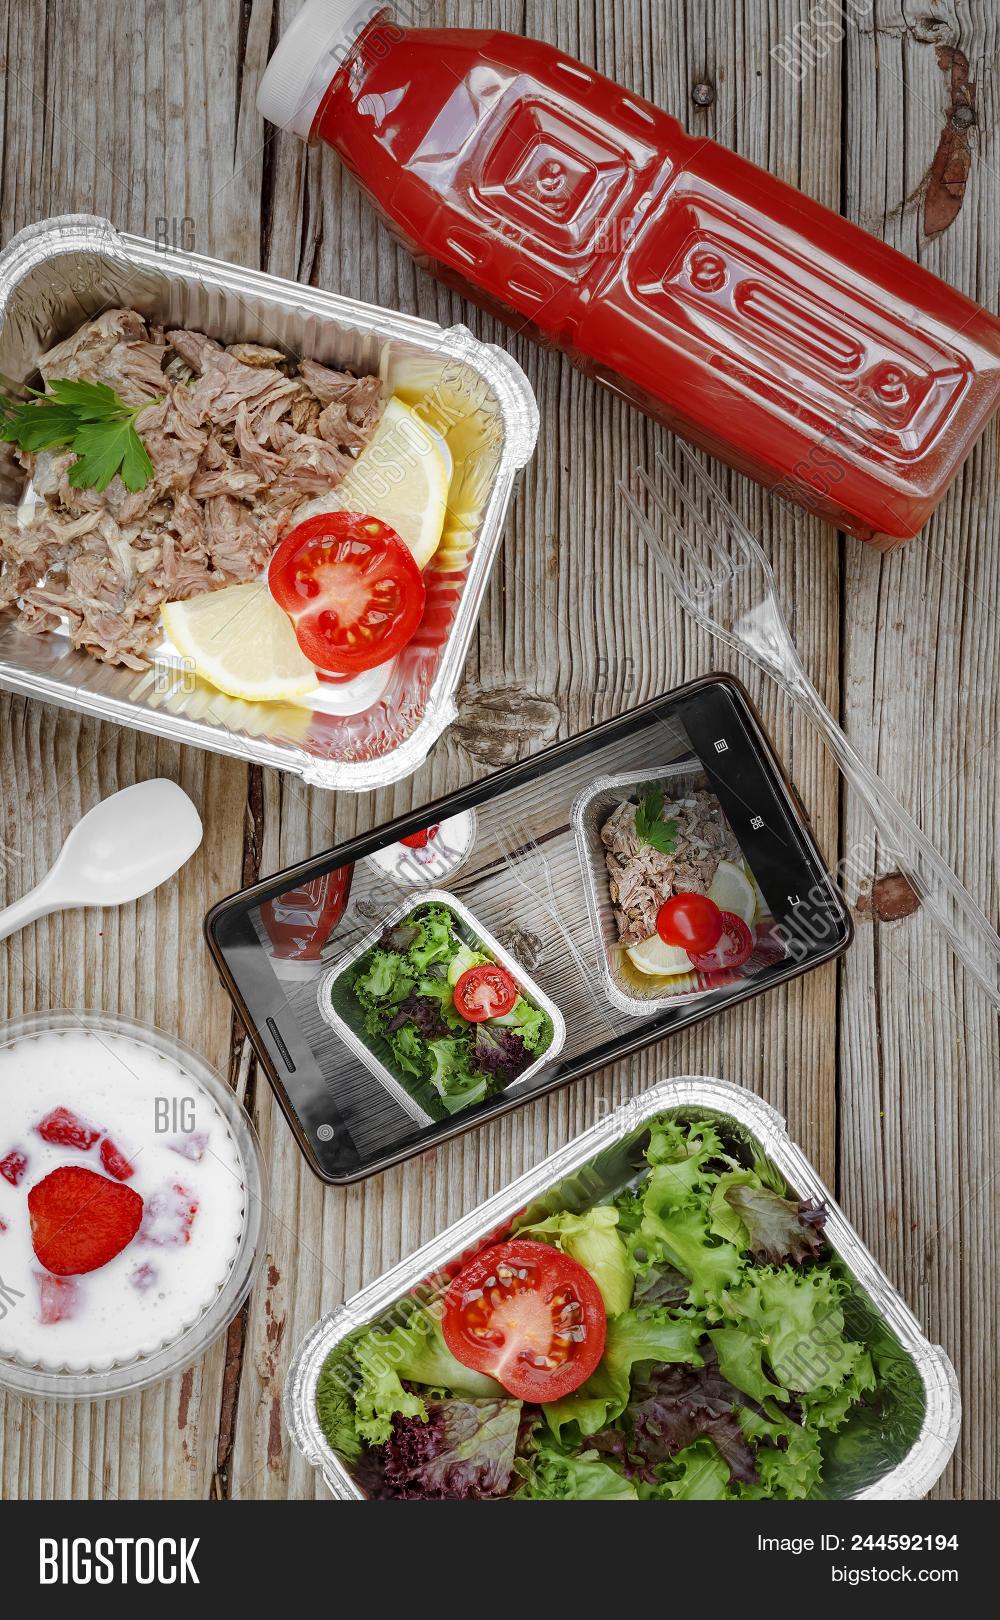 Healthy Food Delivery Concept Proper Nutrition Catering